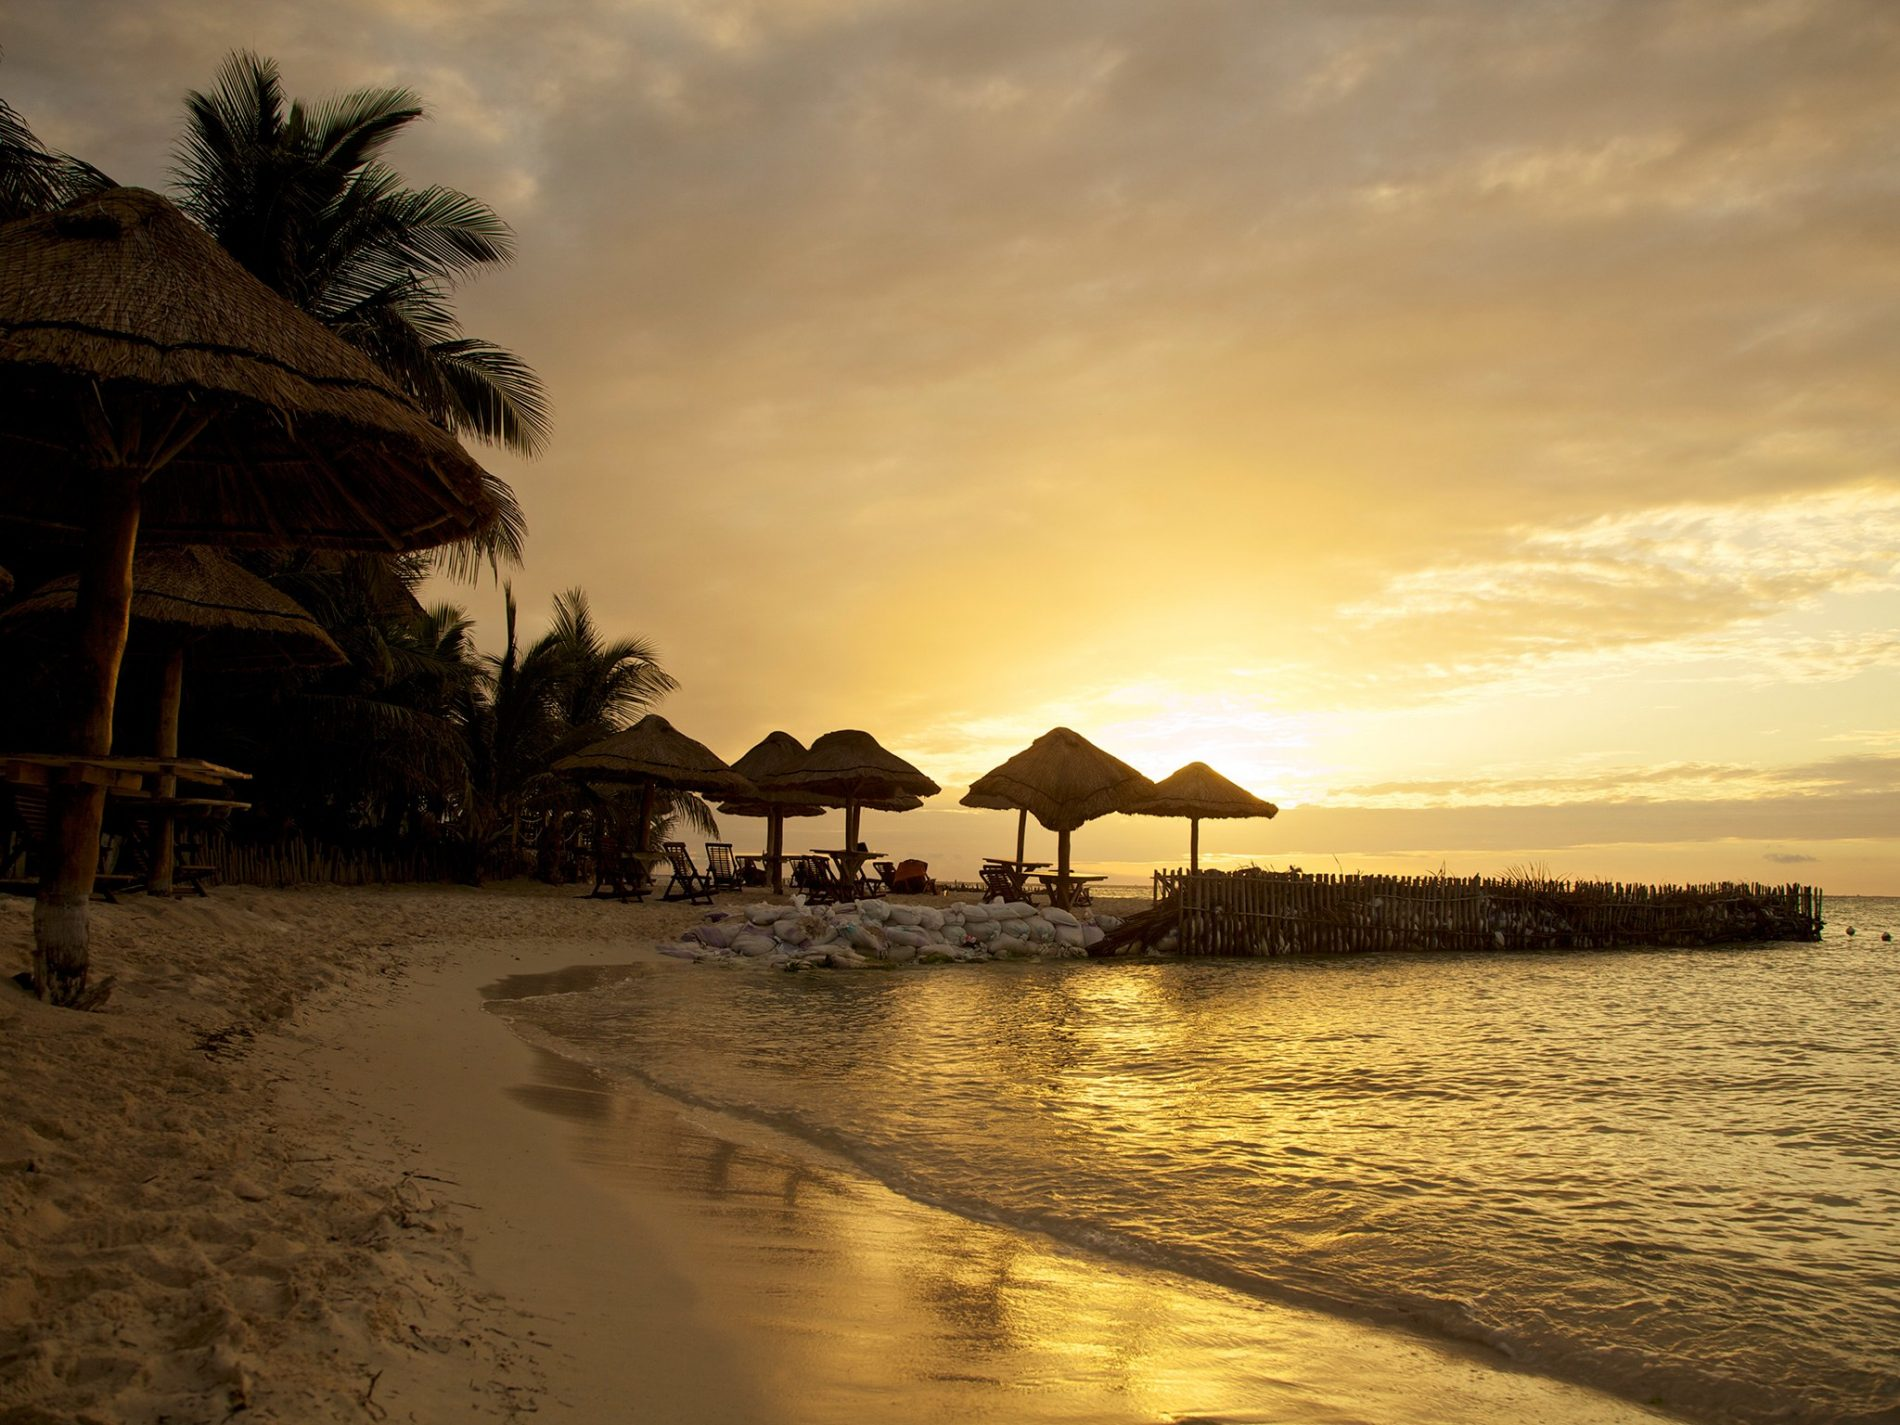 mejores-playas-mexico-isla-mujeres-GettyImages-686739303